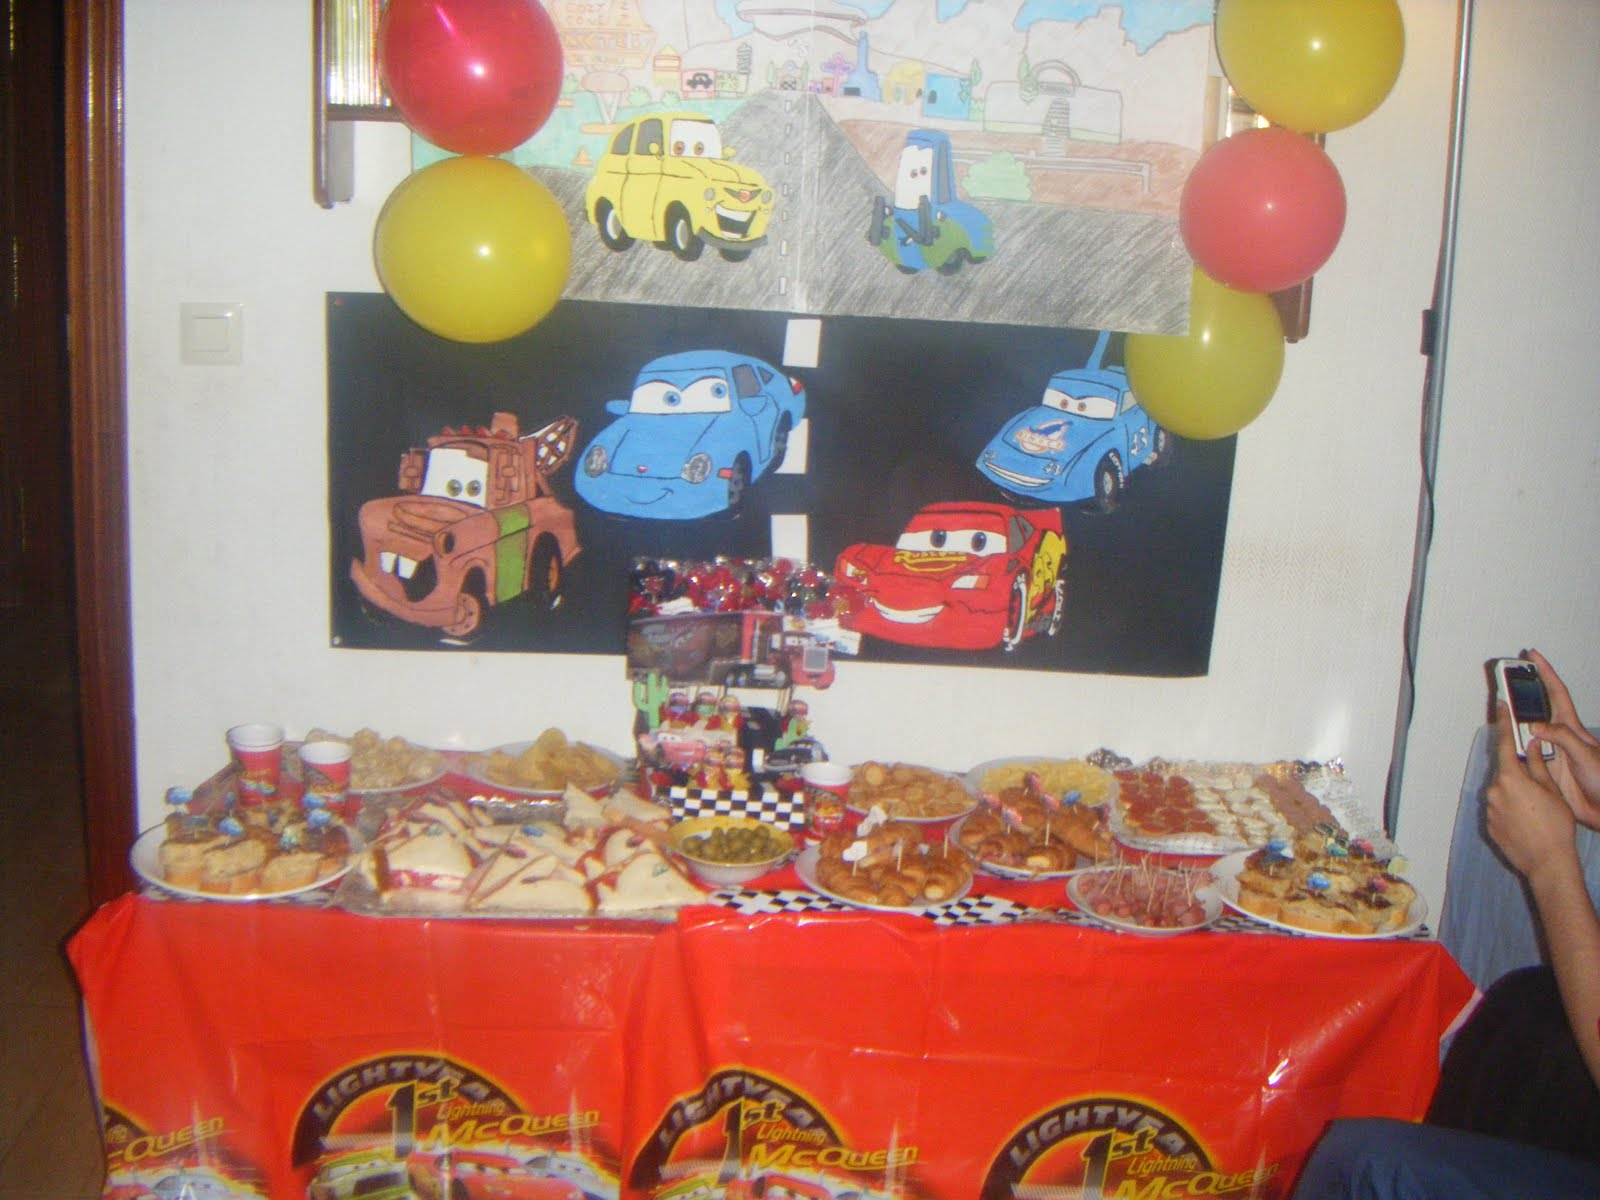 download this Fiesta Blancanieves Fiestaideas Pictures picture